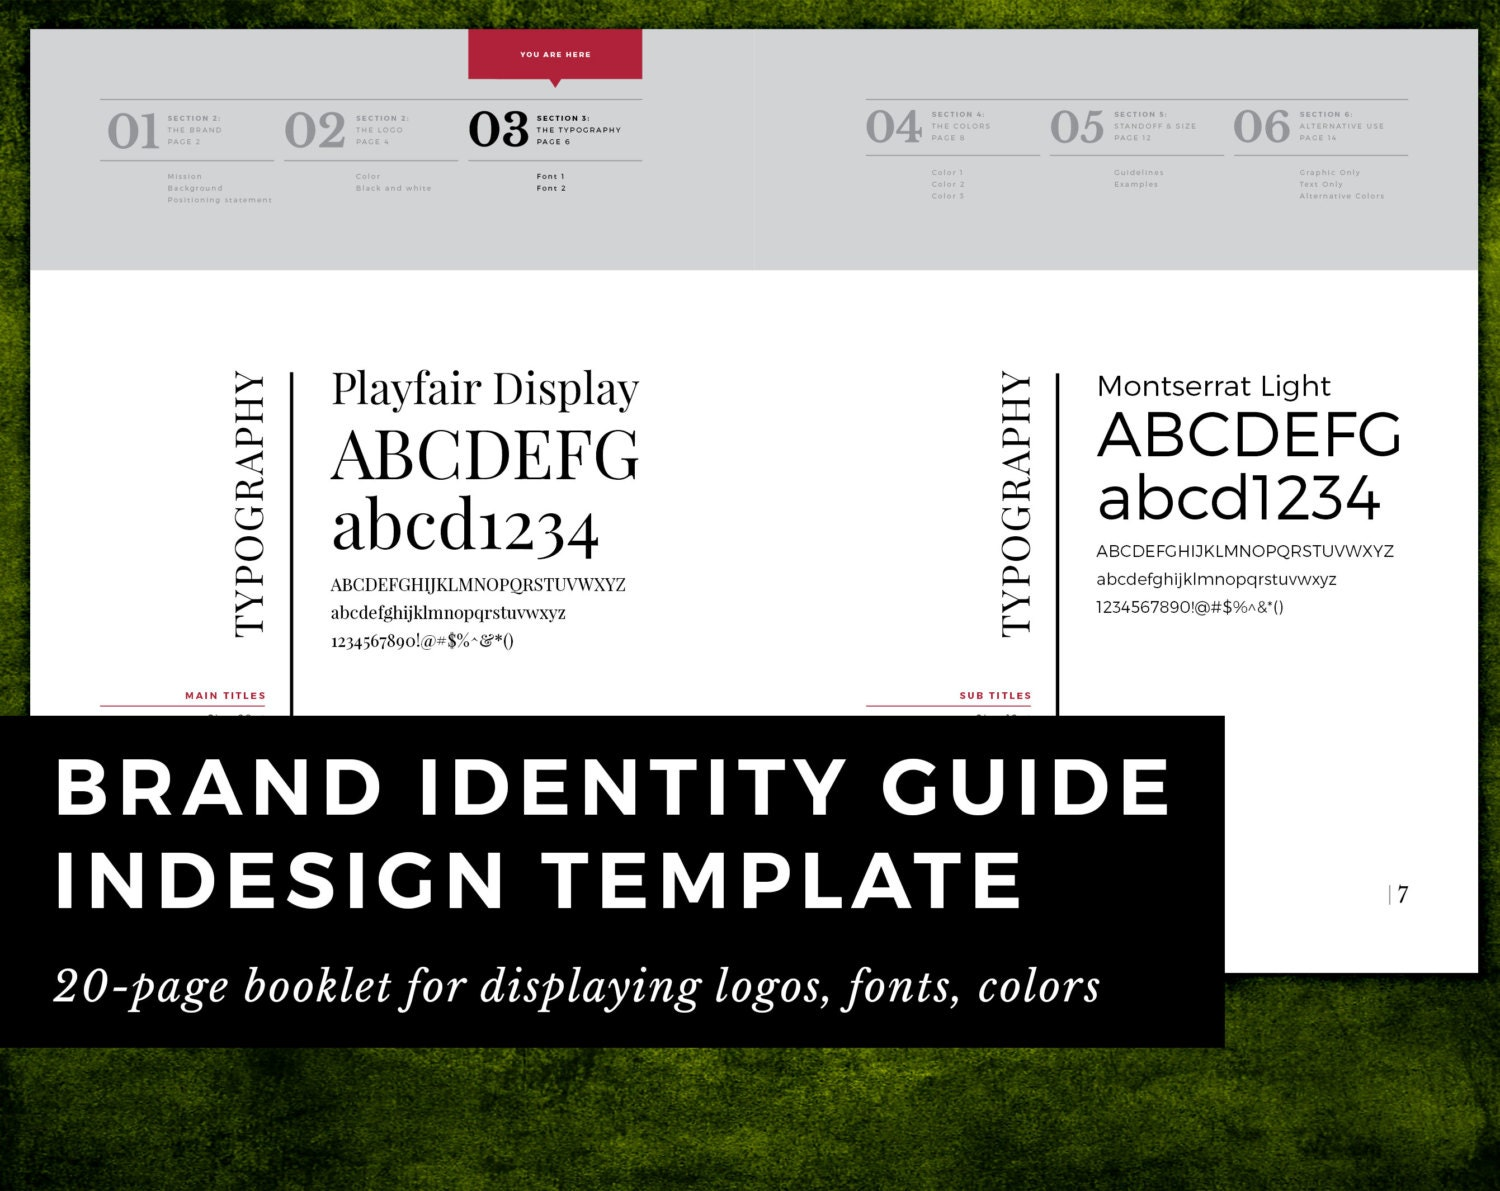 brand identity guide template for indesign cs6 printable basic 20 page template for logo. Black Bedroom Furniture Sets. Home Design Ideas